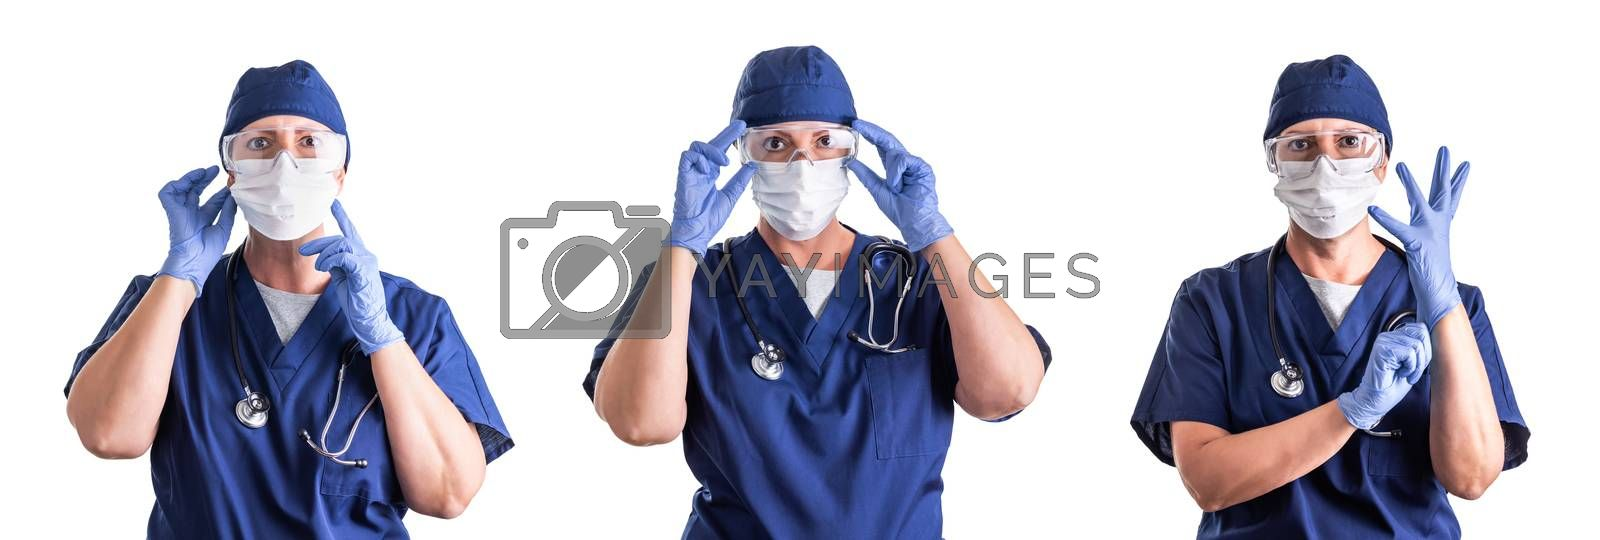 Set of Doctors or Nurses Wearing Personal Protective Equipment Isolated on White Background.